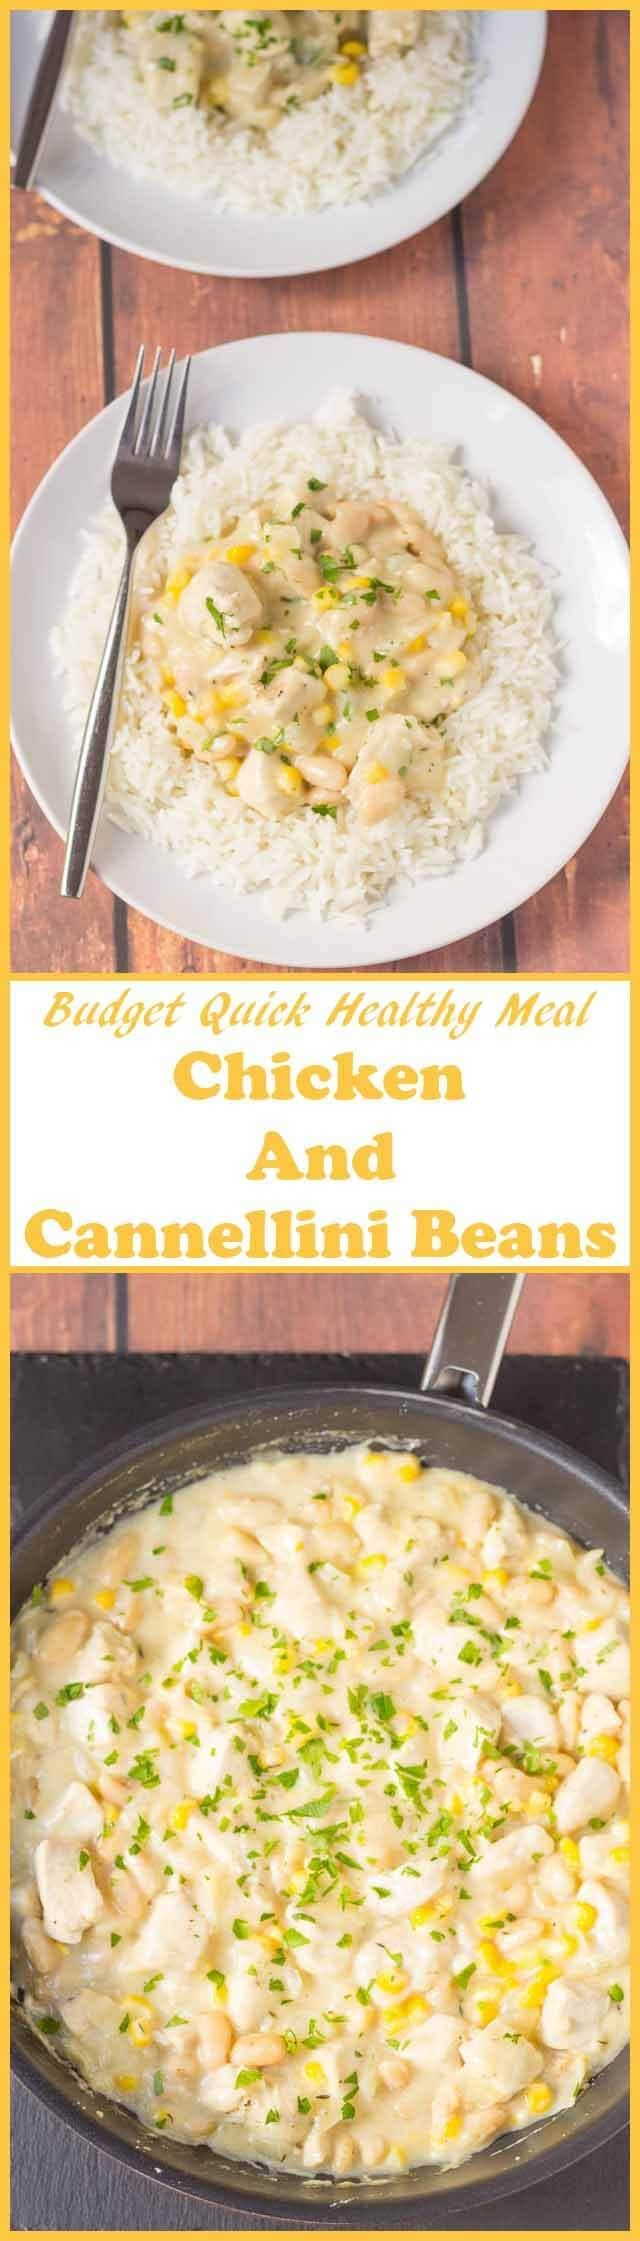 Chicken and cannellini beans is a delicious quick healthy meal. Ready in under an hour and served with rice this one pan meal will be a hit with your family!